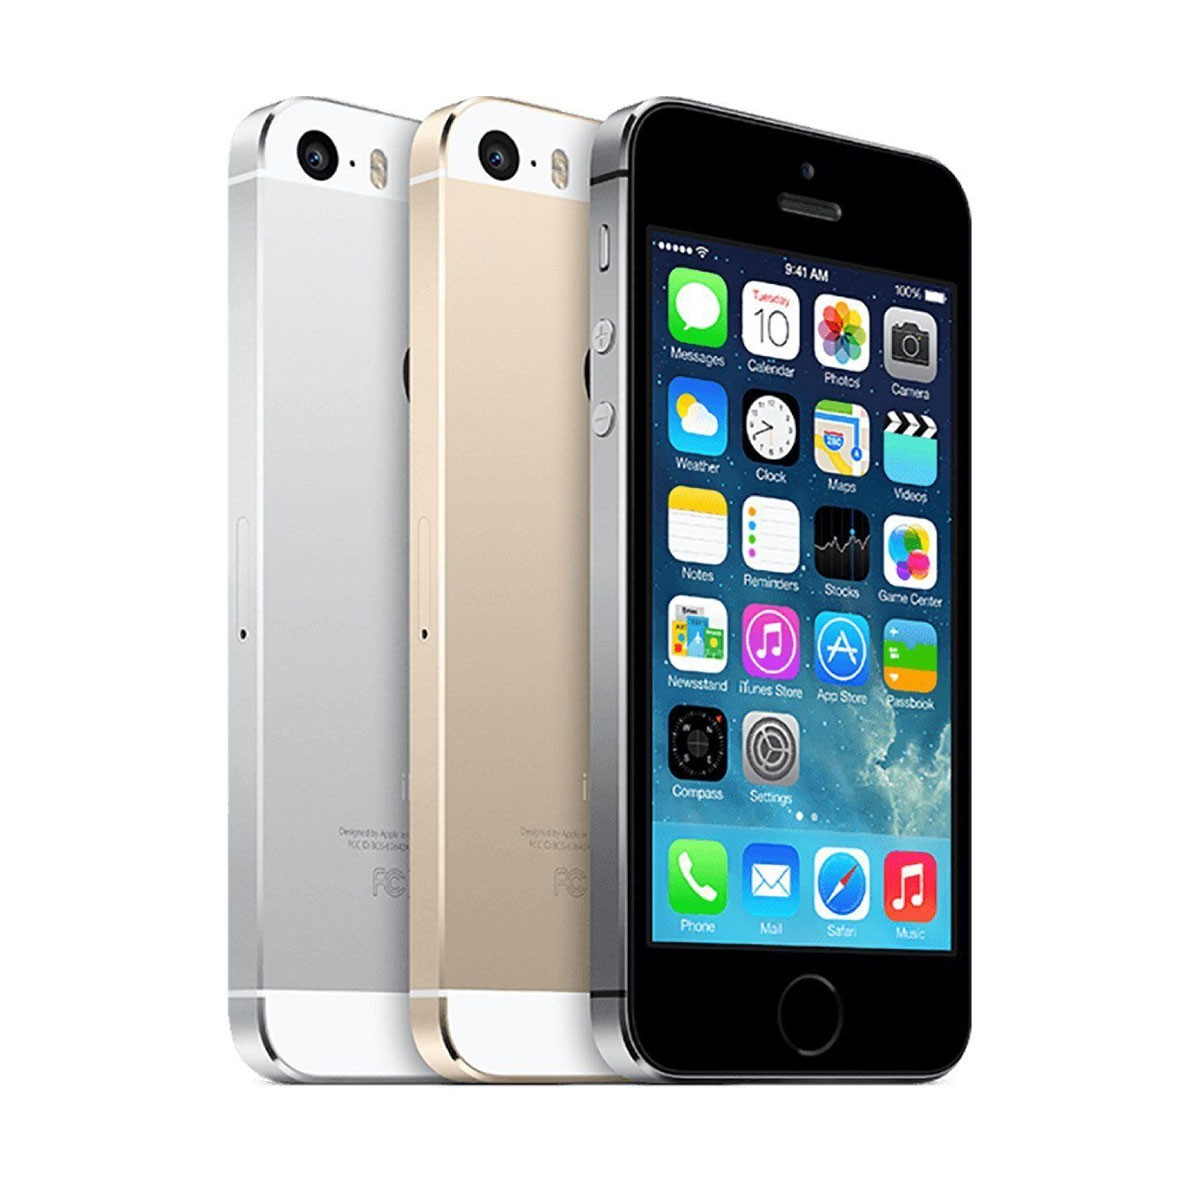 Apple iPhone 5S 32Gb Space Grey/Gold/Silver (Refurbished)